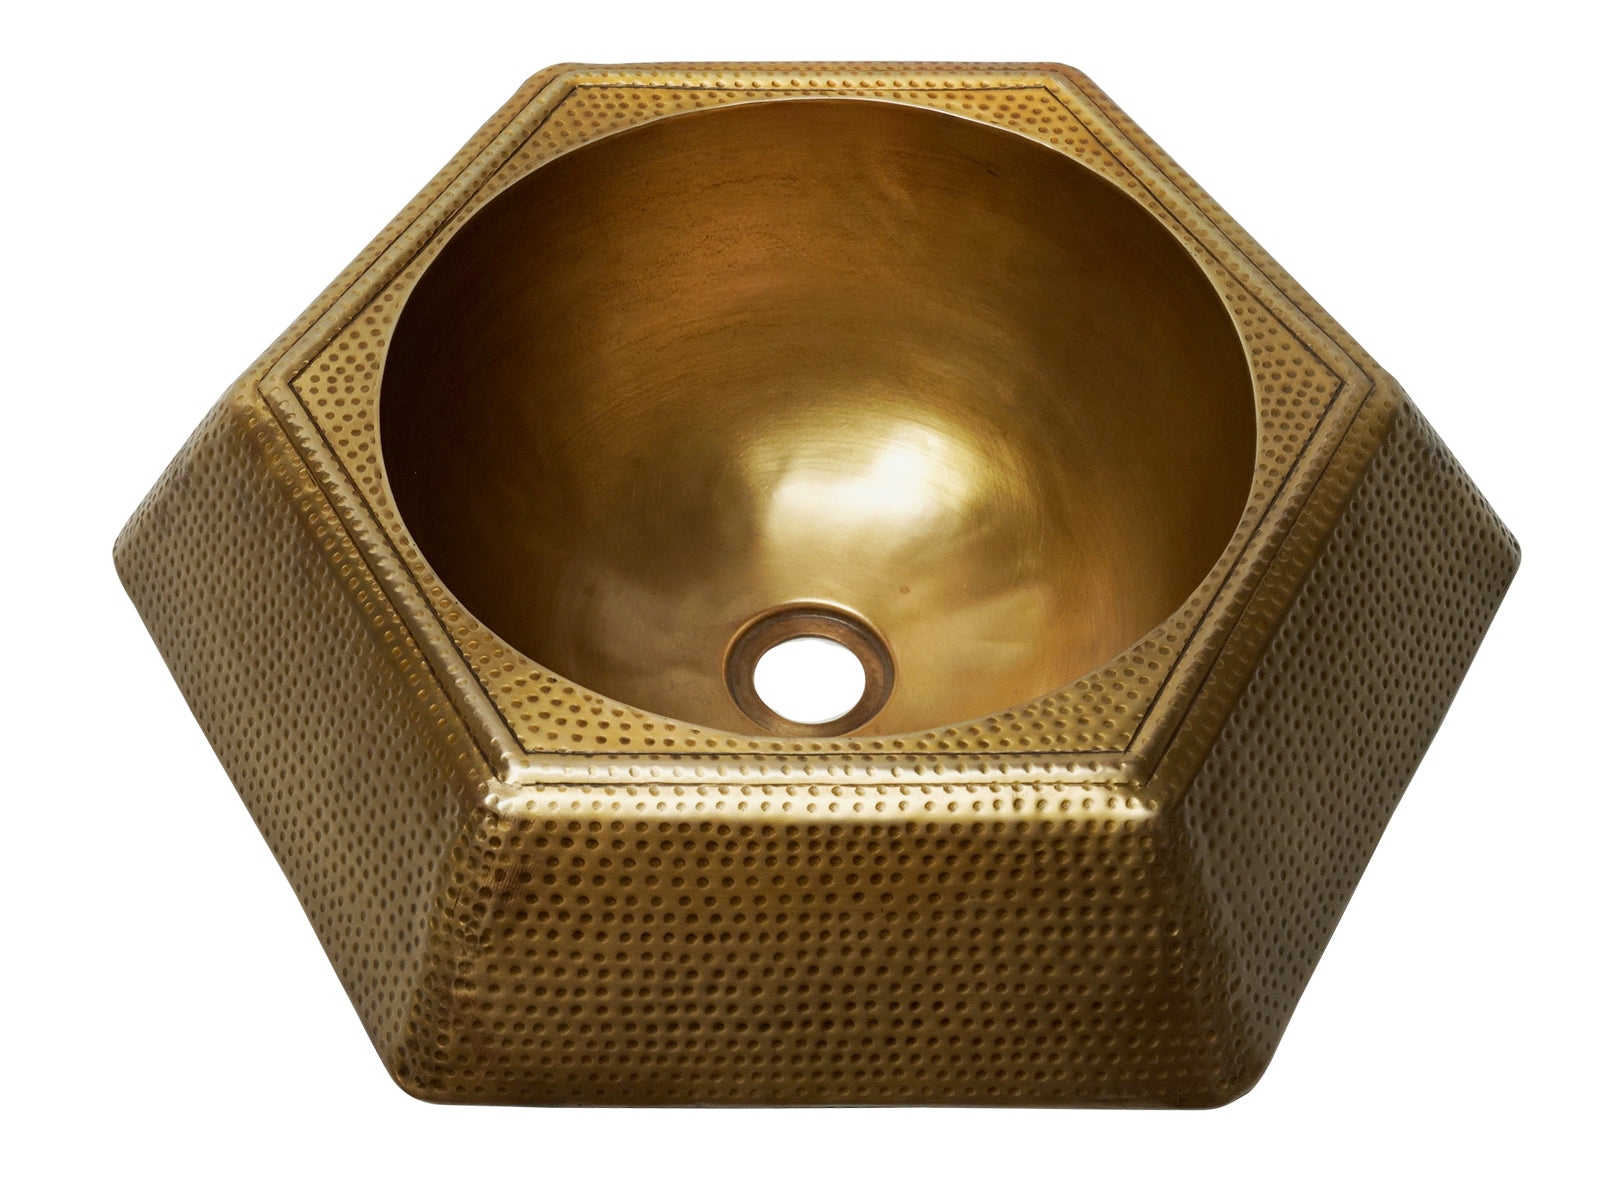 Copper Hammered Hexagonal Prism Vessel